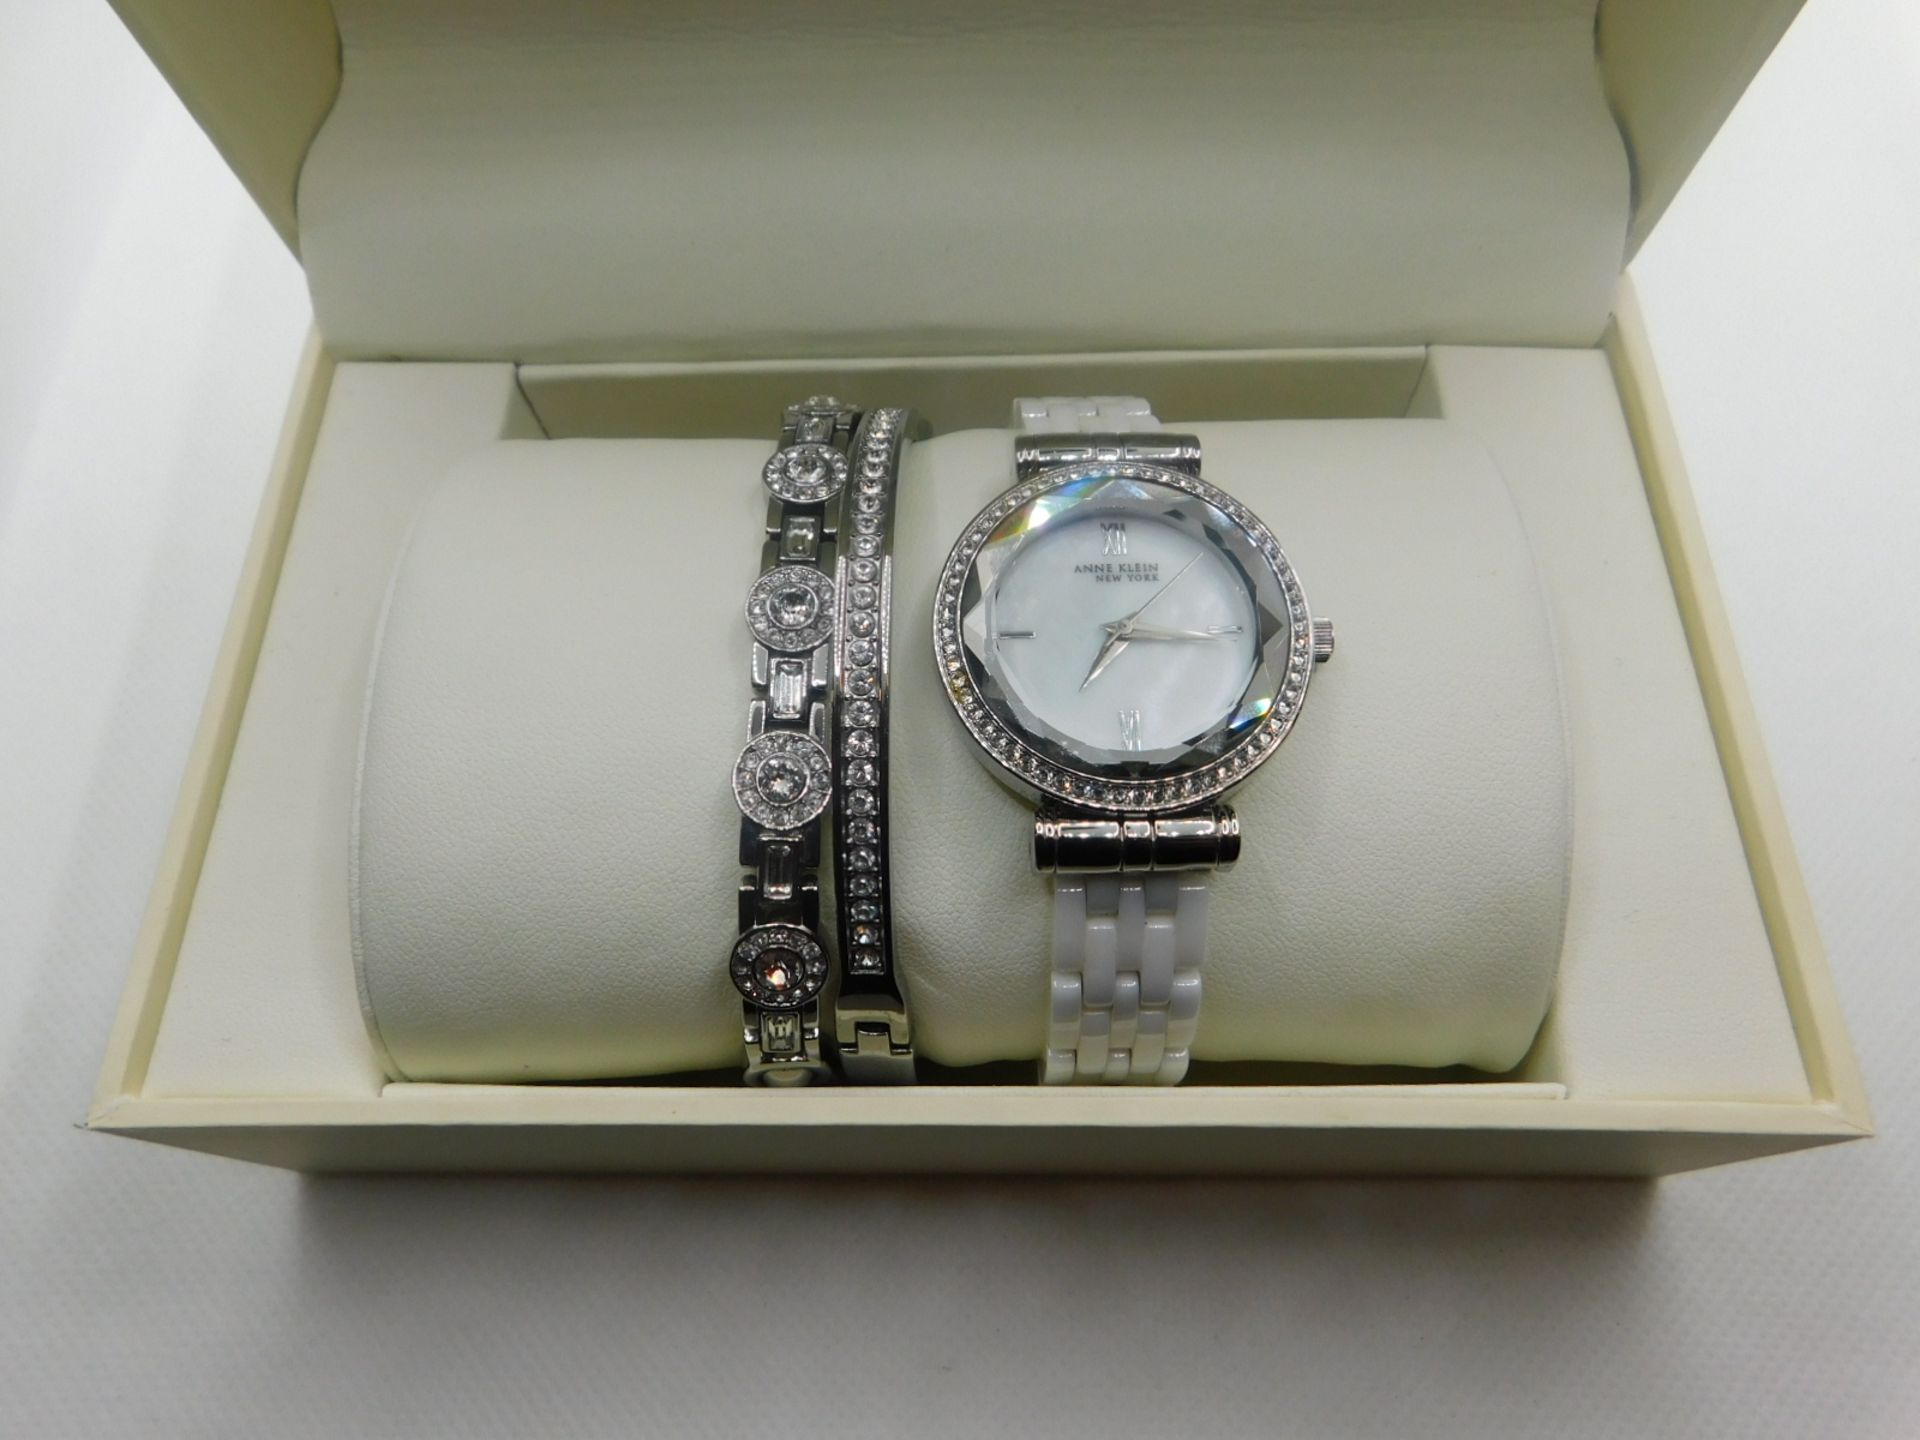 1 BOXED ANNE KLEIN WATCH AND JEWELLERY GIFT SET RRP £149